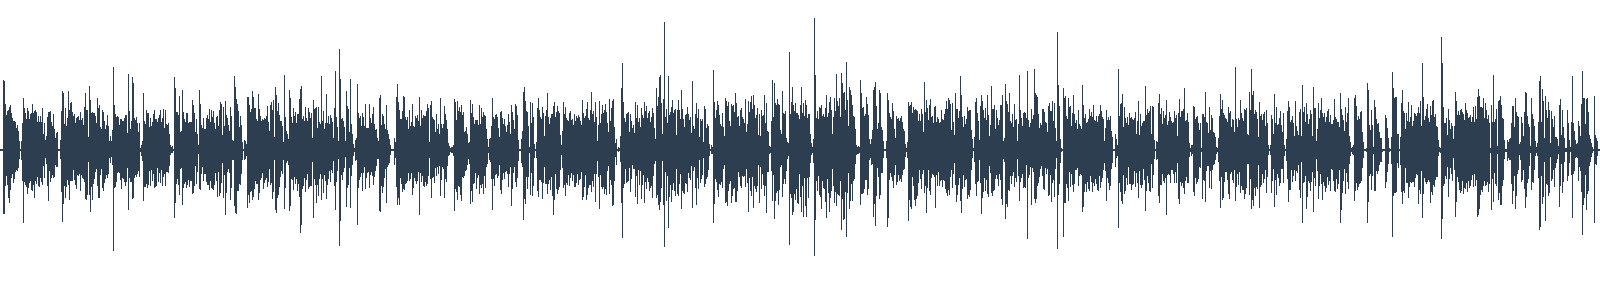 Konkláve waveform